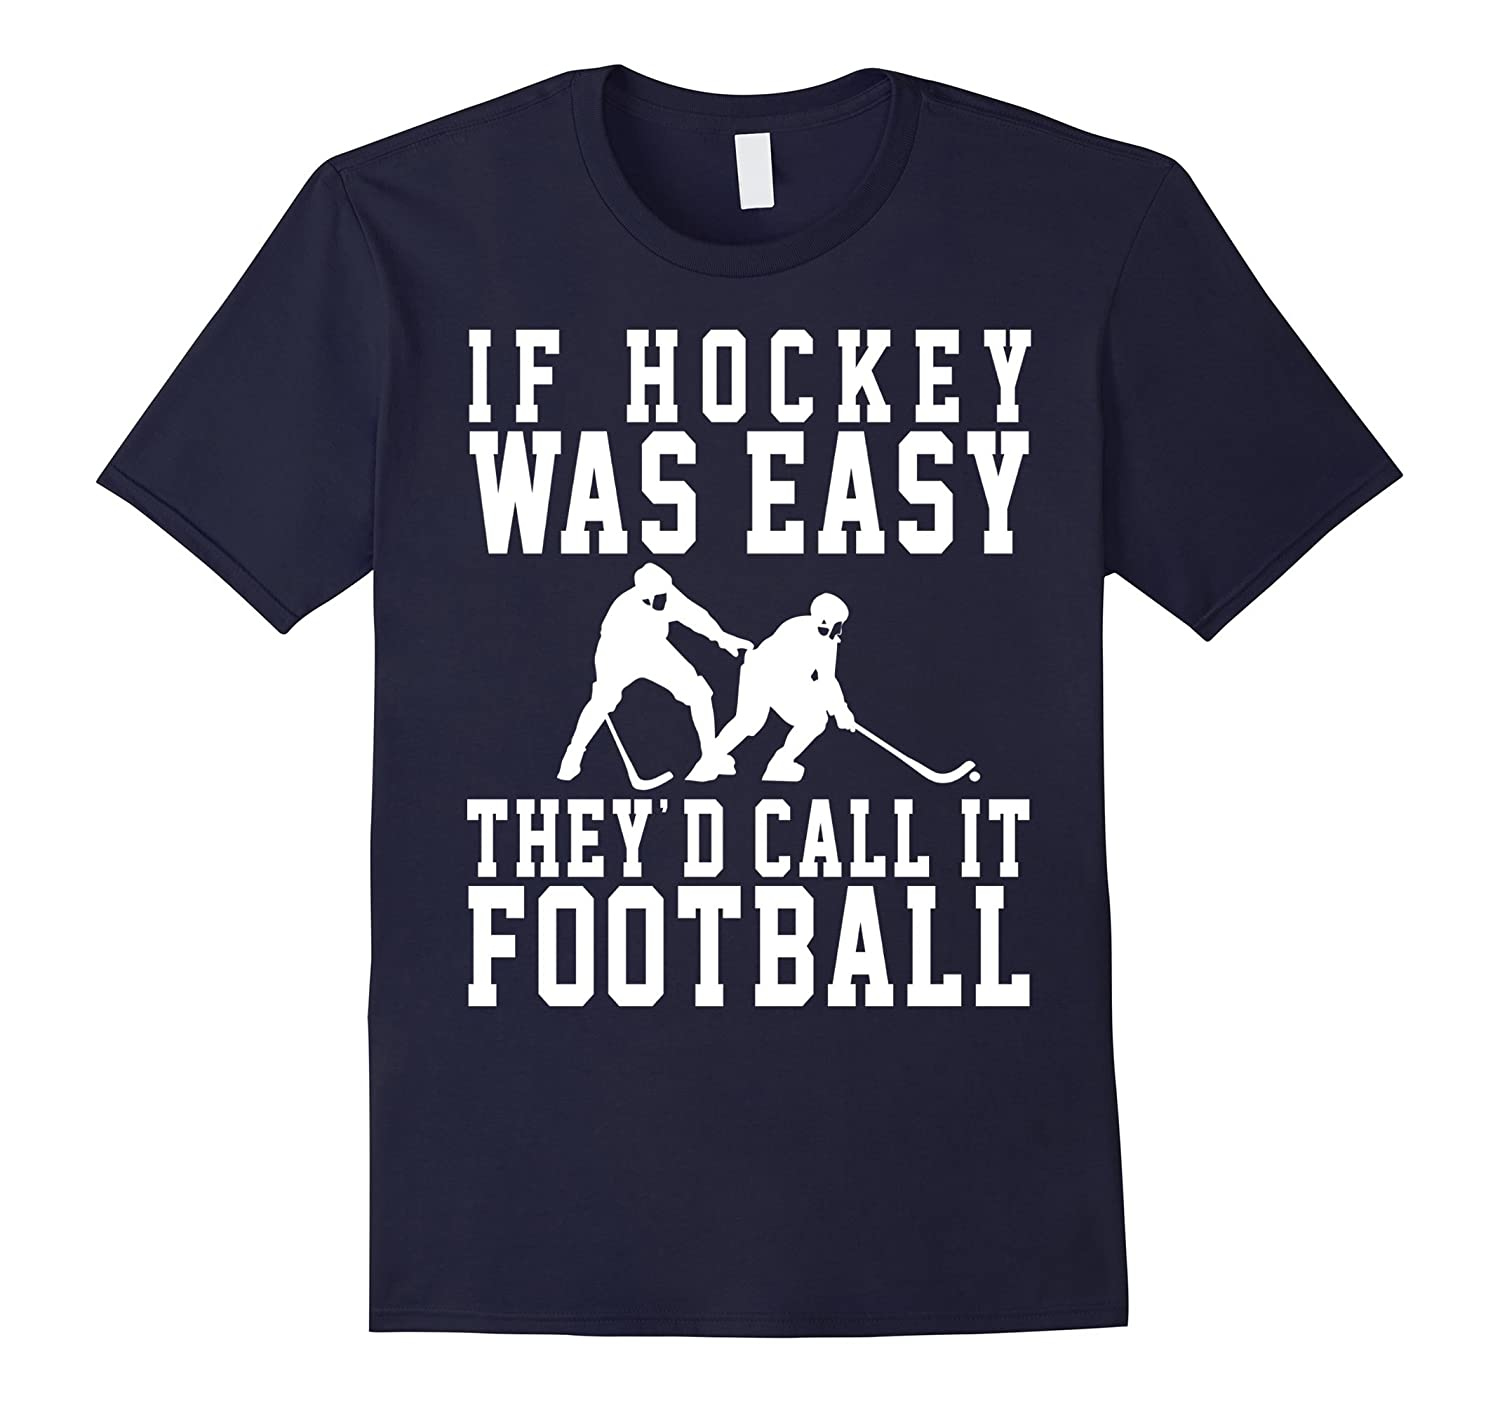 If Hockey Was Easy They'd Call It Football Shirt, Funny Gift